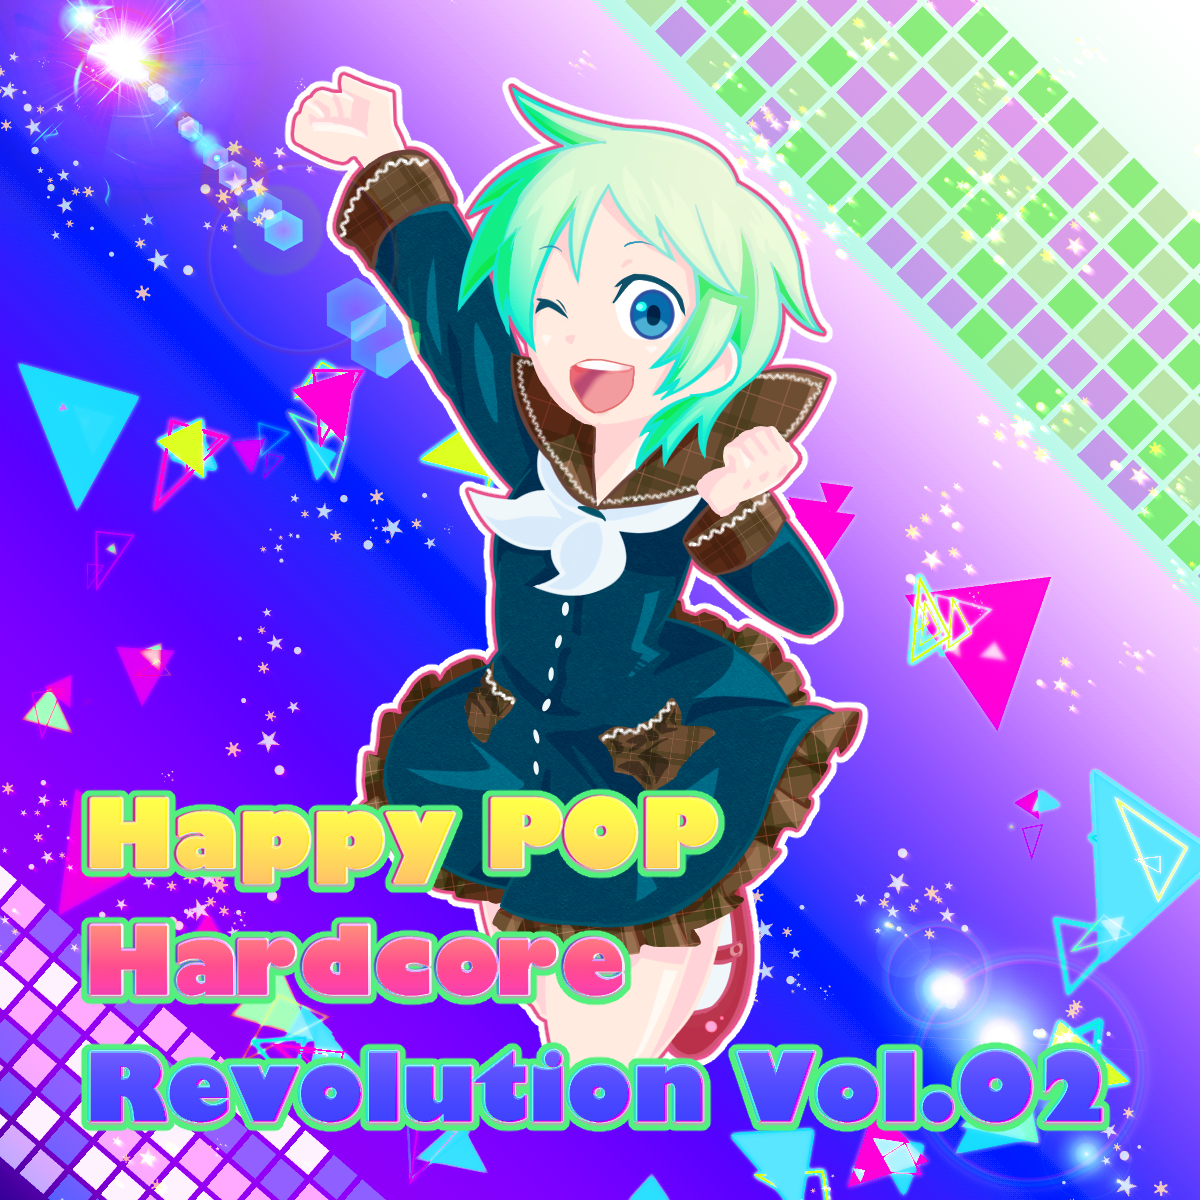 Happy POP Haradcore Revolution Vol.02